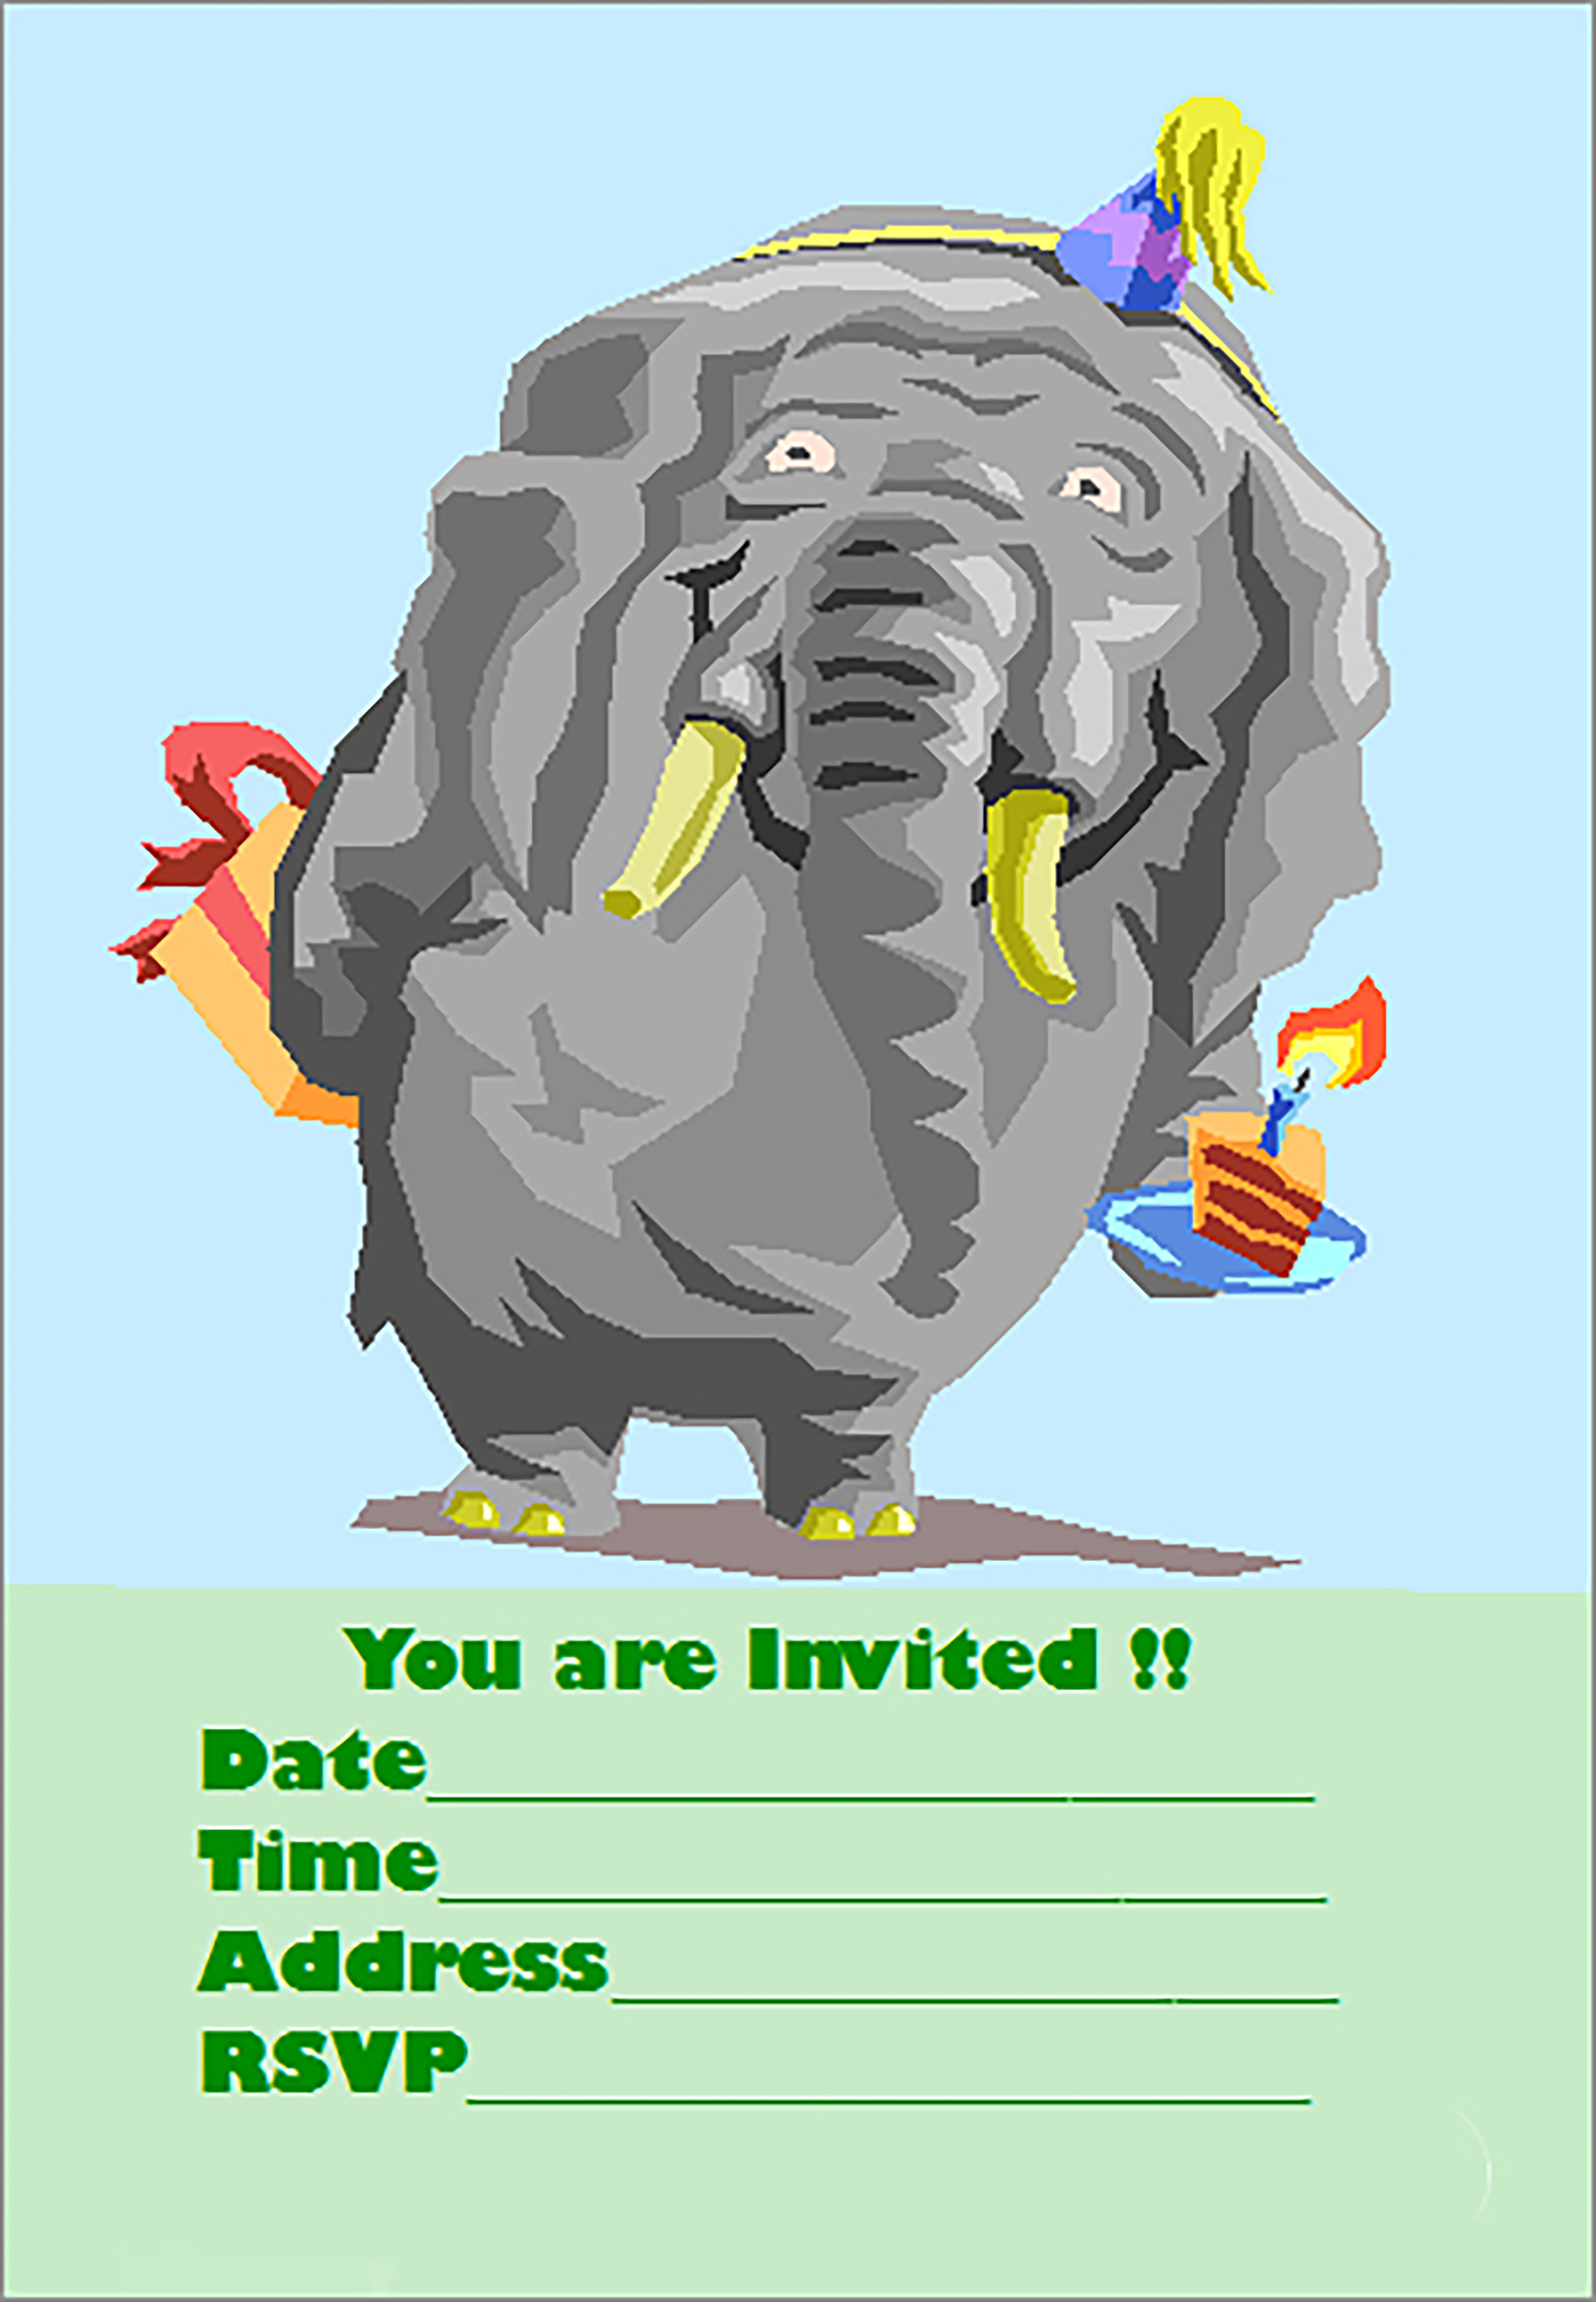 Example of free printable birthday party invitations template: Cute elefant with hat, gift and a cake with a candle in.